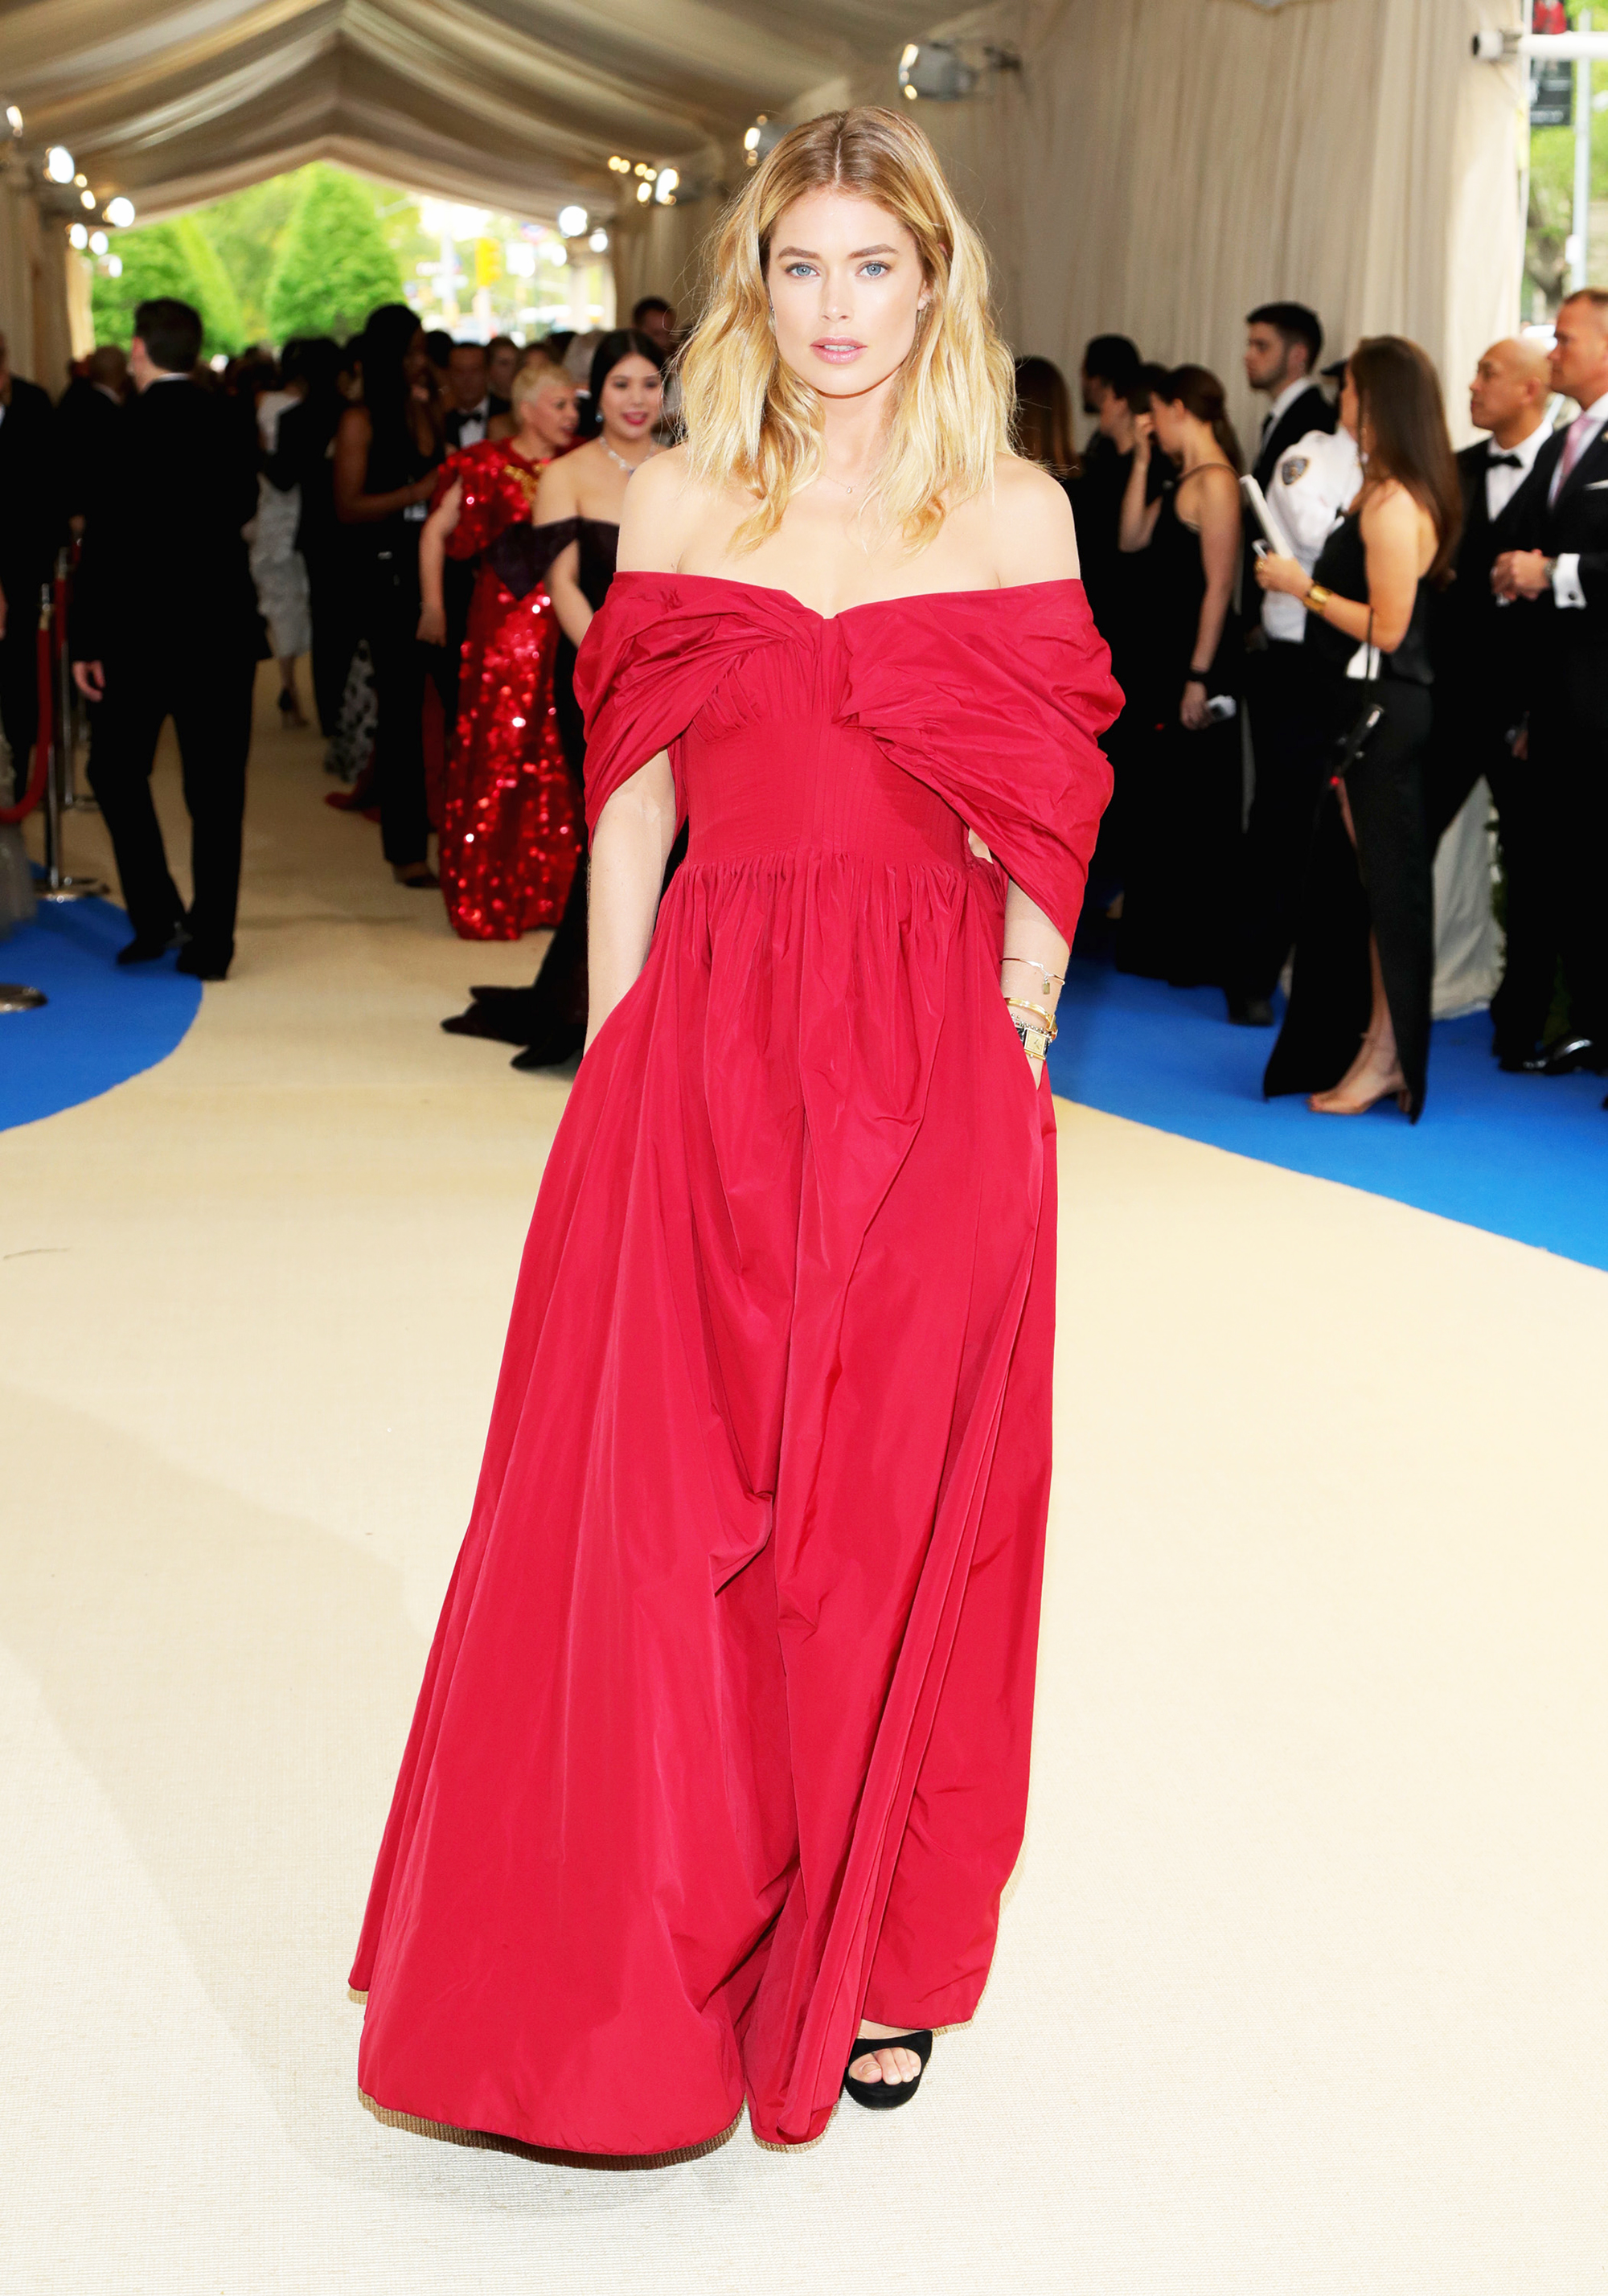 Doutzen Kroes attends The Metropolitan Museum of Art's Costume Institute benefit gala celebrating the opening of the Rei Kawakubo/Comme des Garçons: Art of the In-Between exhibition in New York City, on May 1, 2017.